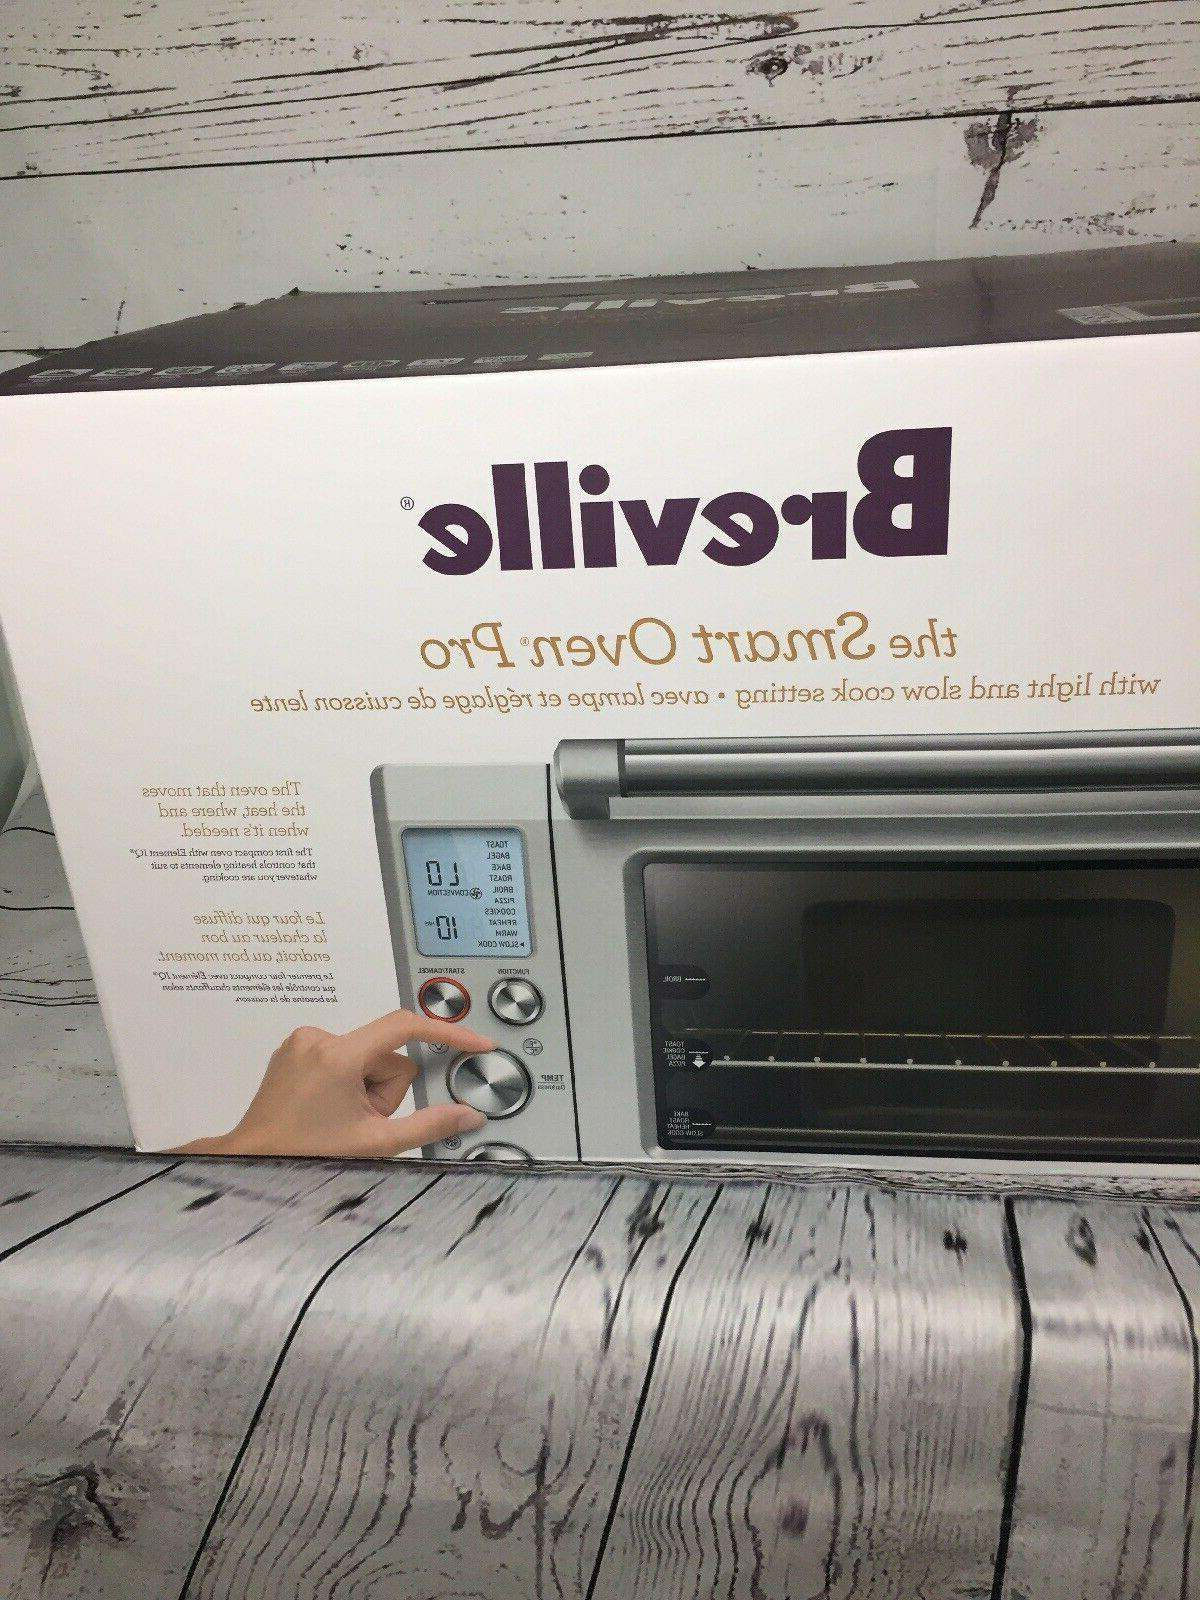 New Smart Oven Pro Convection Oven Silver